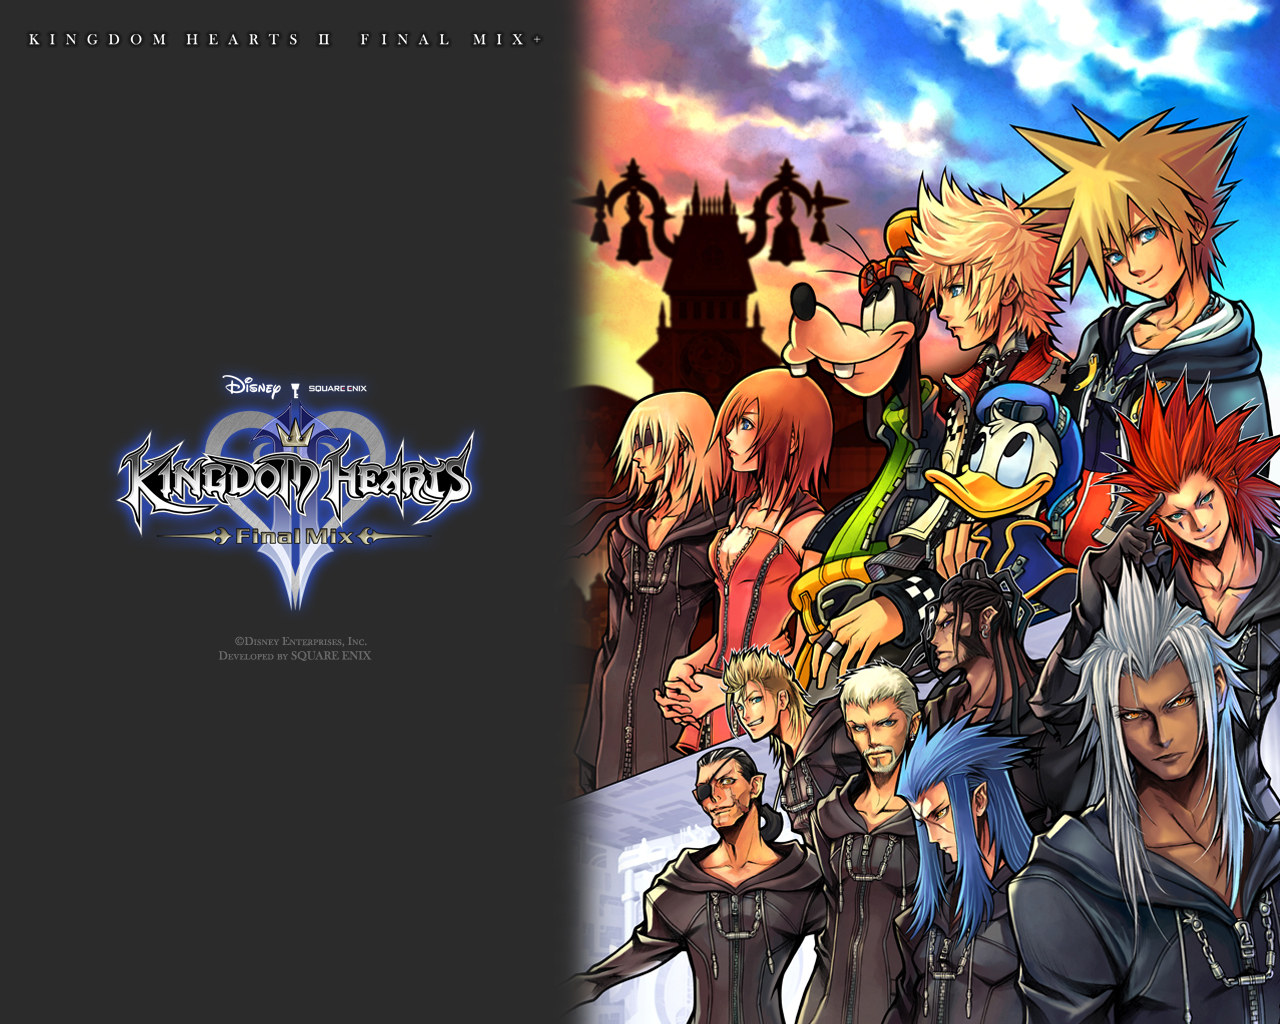 Kingdom Hearts II Final Mix on the horizon 1280x1024